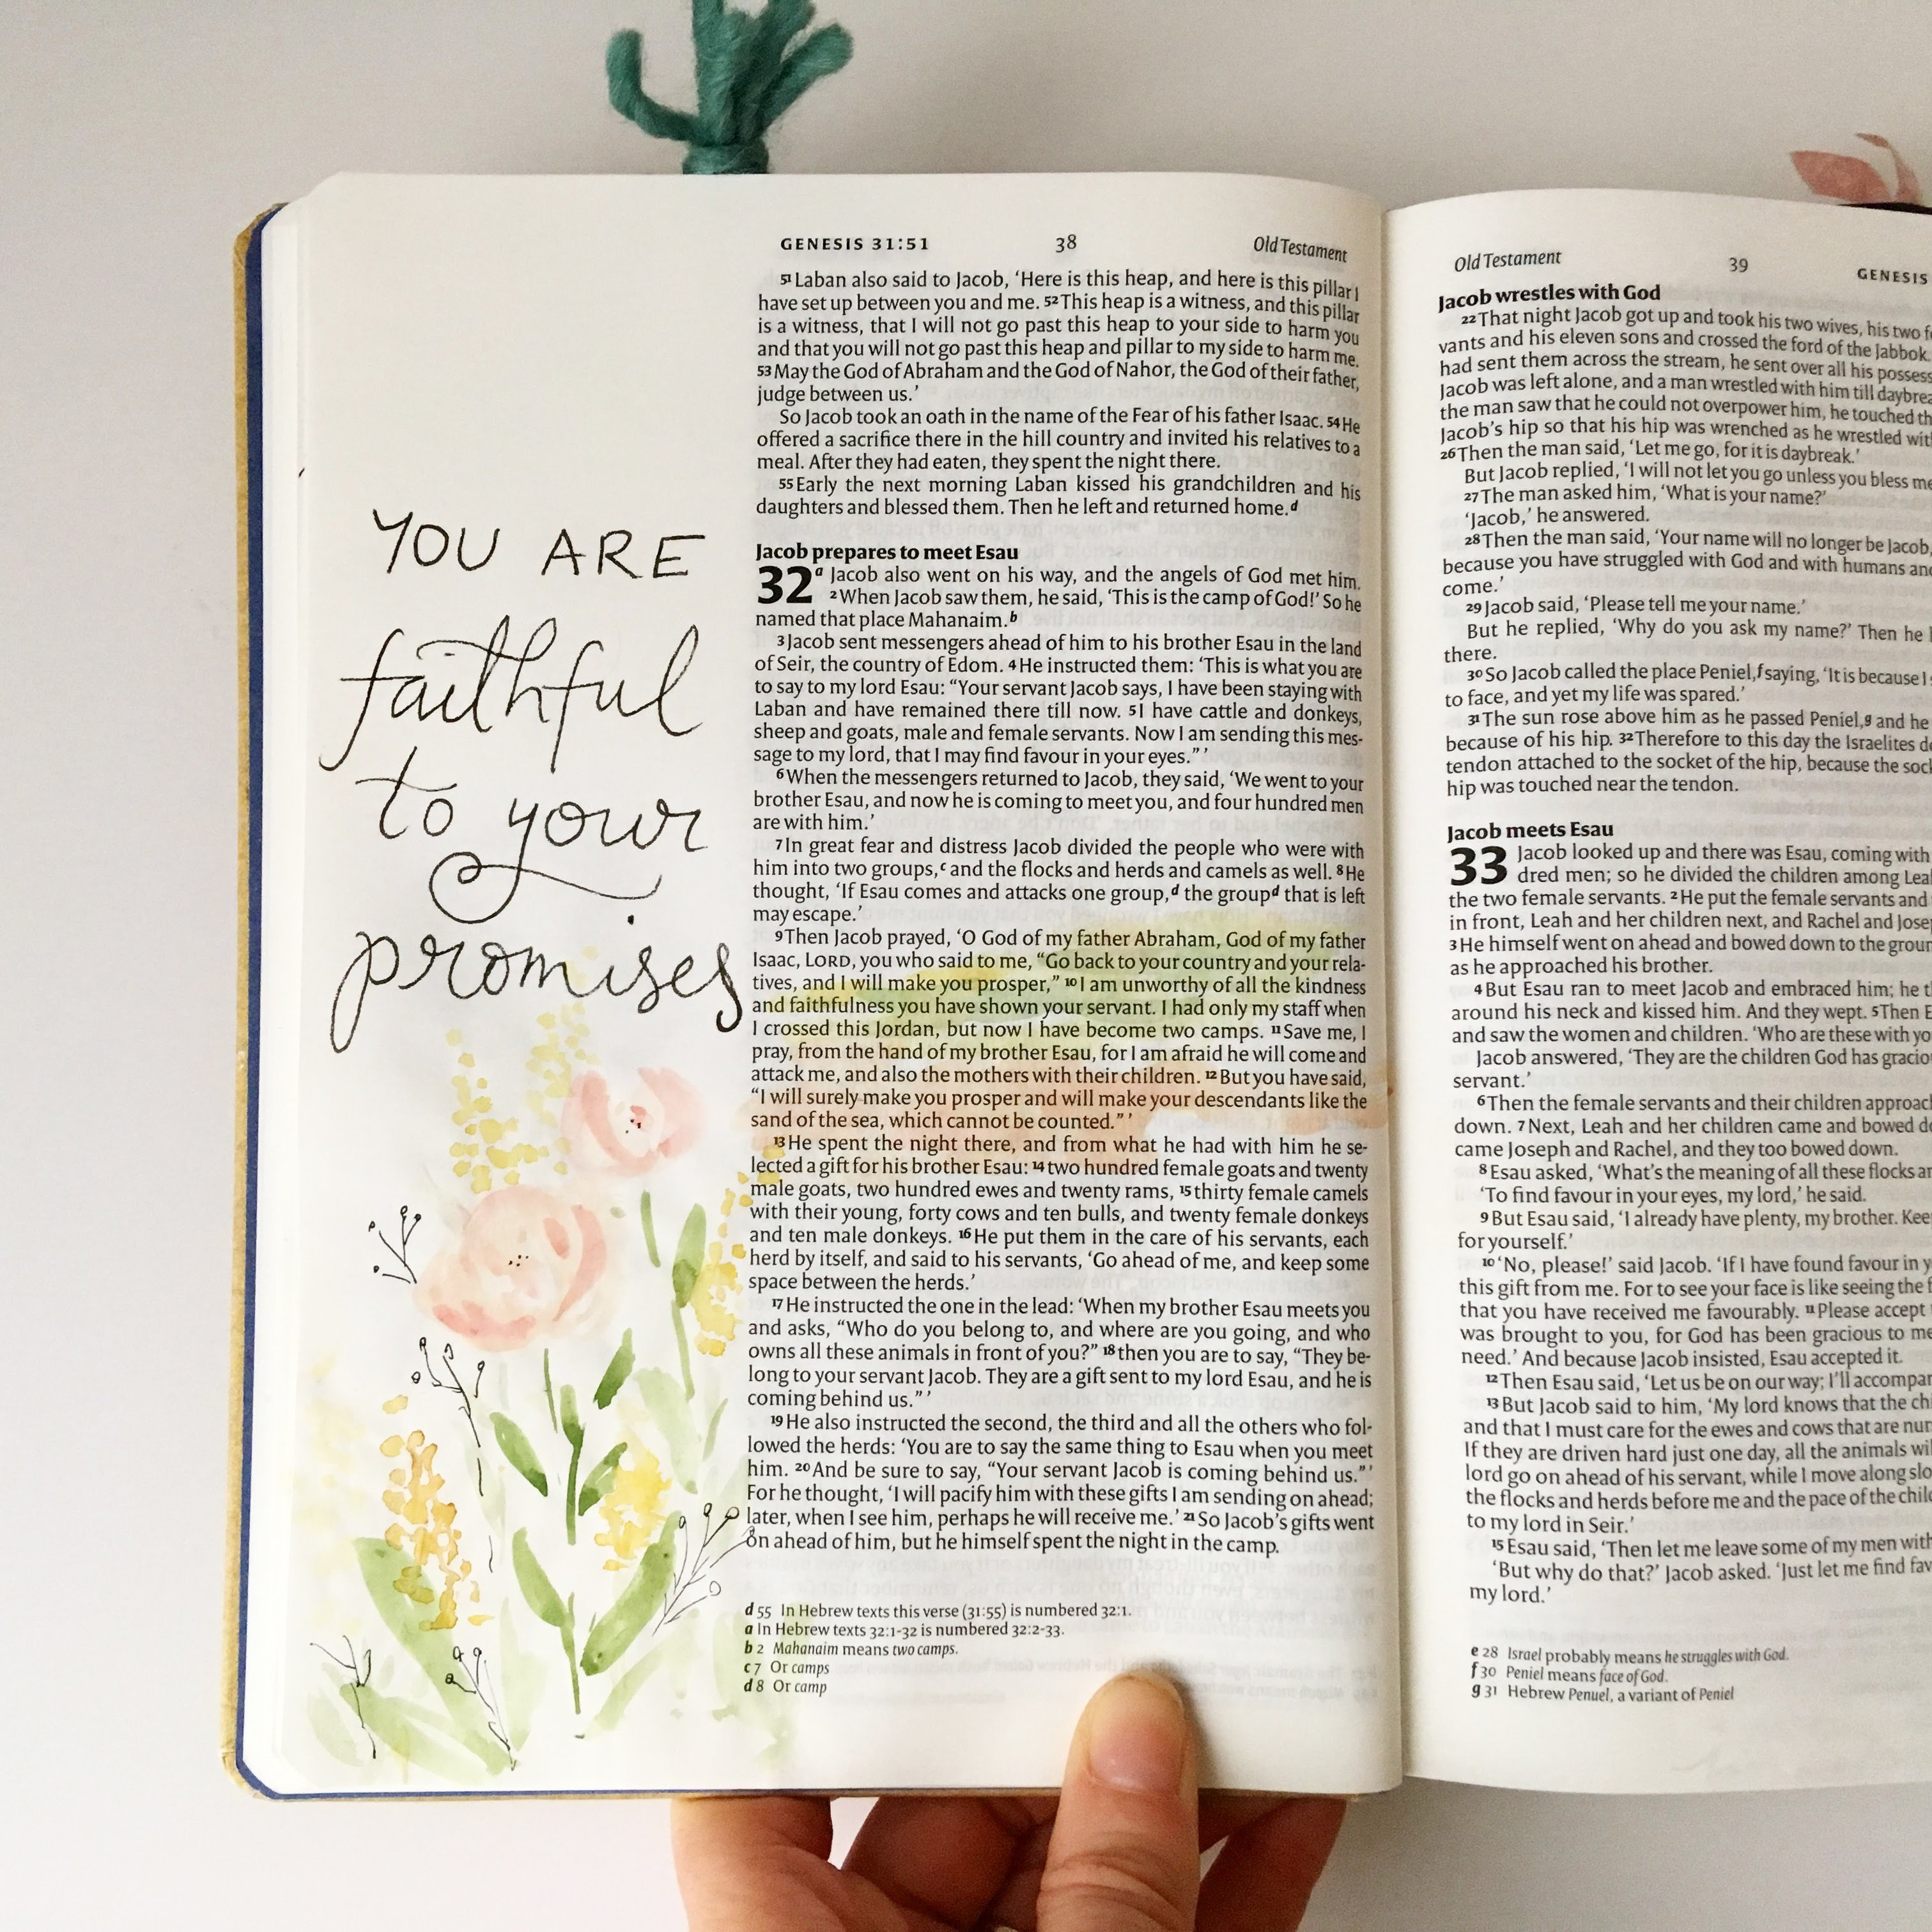 Reading the Bible in a Year chronologically continues! I have kept up with the reading although I haven't spent as much time over here reflecting on it (I'm going to write some reflections based on my Bible journaling pages I think!) I'm familiar enough with the beginning of God's people and those stories from the Old Testament as Adam and Eve (and all of Israel) turn from living life God's way, turn from his love and abundant blessing to doing things their way- over and over again. The characters who are famous on the Old Testament, Abraham, Isaac, Joseph - so many people who were flawed and tried their best to walk in God's plans for their lives but often fell down and had to return to God in humility. Despite their imperfections God uses them all, uses his chosen people and uses us. He directs their path, goes before them and puts people and situations before them that are for His good plan. Through all the things that happen through Genesis and Exodus, we learn that God is almighty- he is faithful, he is perfect, he is jealous when his people turn his back on Him and start worshipping idols and forgetting the amazing things he has done for them, rescuing them from Egypt, moving the Red Sea, providing food where there was none, protecting them from their enemies, giving them a new land. When they turn from him, they suffer the consequences (things do not go well for them, they lack the abundance and life and love that a relationship with God gives us). But God remains faithful to them. He doesn't forget Israel when they forget him. He lets them wander their own way when they choose to - but then they realise and come back and he is always there to welcome them with open arms. Just like the prodigal son and the father waiting - God is that same Father through all Israel's wandering off. I love that God has plans for his people. And he has plans for us. I love that he his people who are afraid and weak and not the most amazing on their own- because it's only through Him that they can do the amazing things. I'm so glad that he goes before us and can see things we can't. I love that he uses flawed people and that he forgives and relents and loves us, all of us who forget and turn our own way day by day. God leads the way- we just need to be looking for him, looking at Him. He walks with us through deep waters and wants to be with us, for us to know and love him more than anything. And as for all the laws and details and ways that Israel could try to work their way back out of the messes they made- I am so glad that Jesus made a final, ultimate sacrifice so we don't have to make any more sacrifices- the final atonement so that we don't have to pick through laws that highlight all our failings. God is holy, he is pure and wonderful and he loves us enough to make us the same, so that despite our turning from his love we can be with him. We can talk to him, pour out to him, follow him, confess to him, sit with him and ask him to show us what is next. Following the story of his steadfast love towards his people, his continued strength and power given to people who feel incapable and seeing both his justice and mercy is such a gift. I love that we can get to know the history of all that happened to the Israelites before Jesus, and see exactly why we need him, exactly how fallible we are, turning away from him again and again often in the most ridiculous and silly ways. We fail to trust him even though we have seen him doing incredible things in our lives (like the parting of the Red Sea). We worry about him providing for us even though he has always done so and always will. We see shiny golden objects, make things to make our lives fun and interesting and forget who created the whole world, out of love for little old us. Whilst sometimes reading the Old Testament can seem hard work and each sentance doesn't always thrill, it's the historical narrative that shaped the identity of God's people, and we can learn so much from the way they interact with God and him with them.